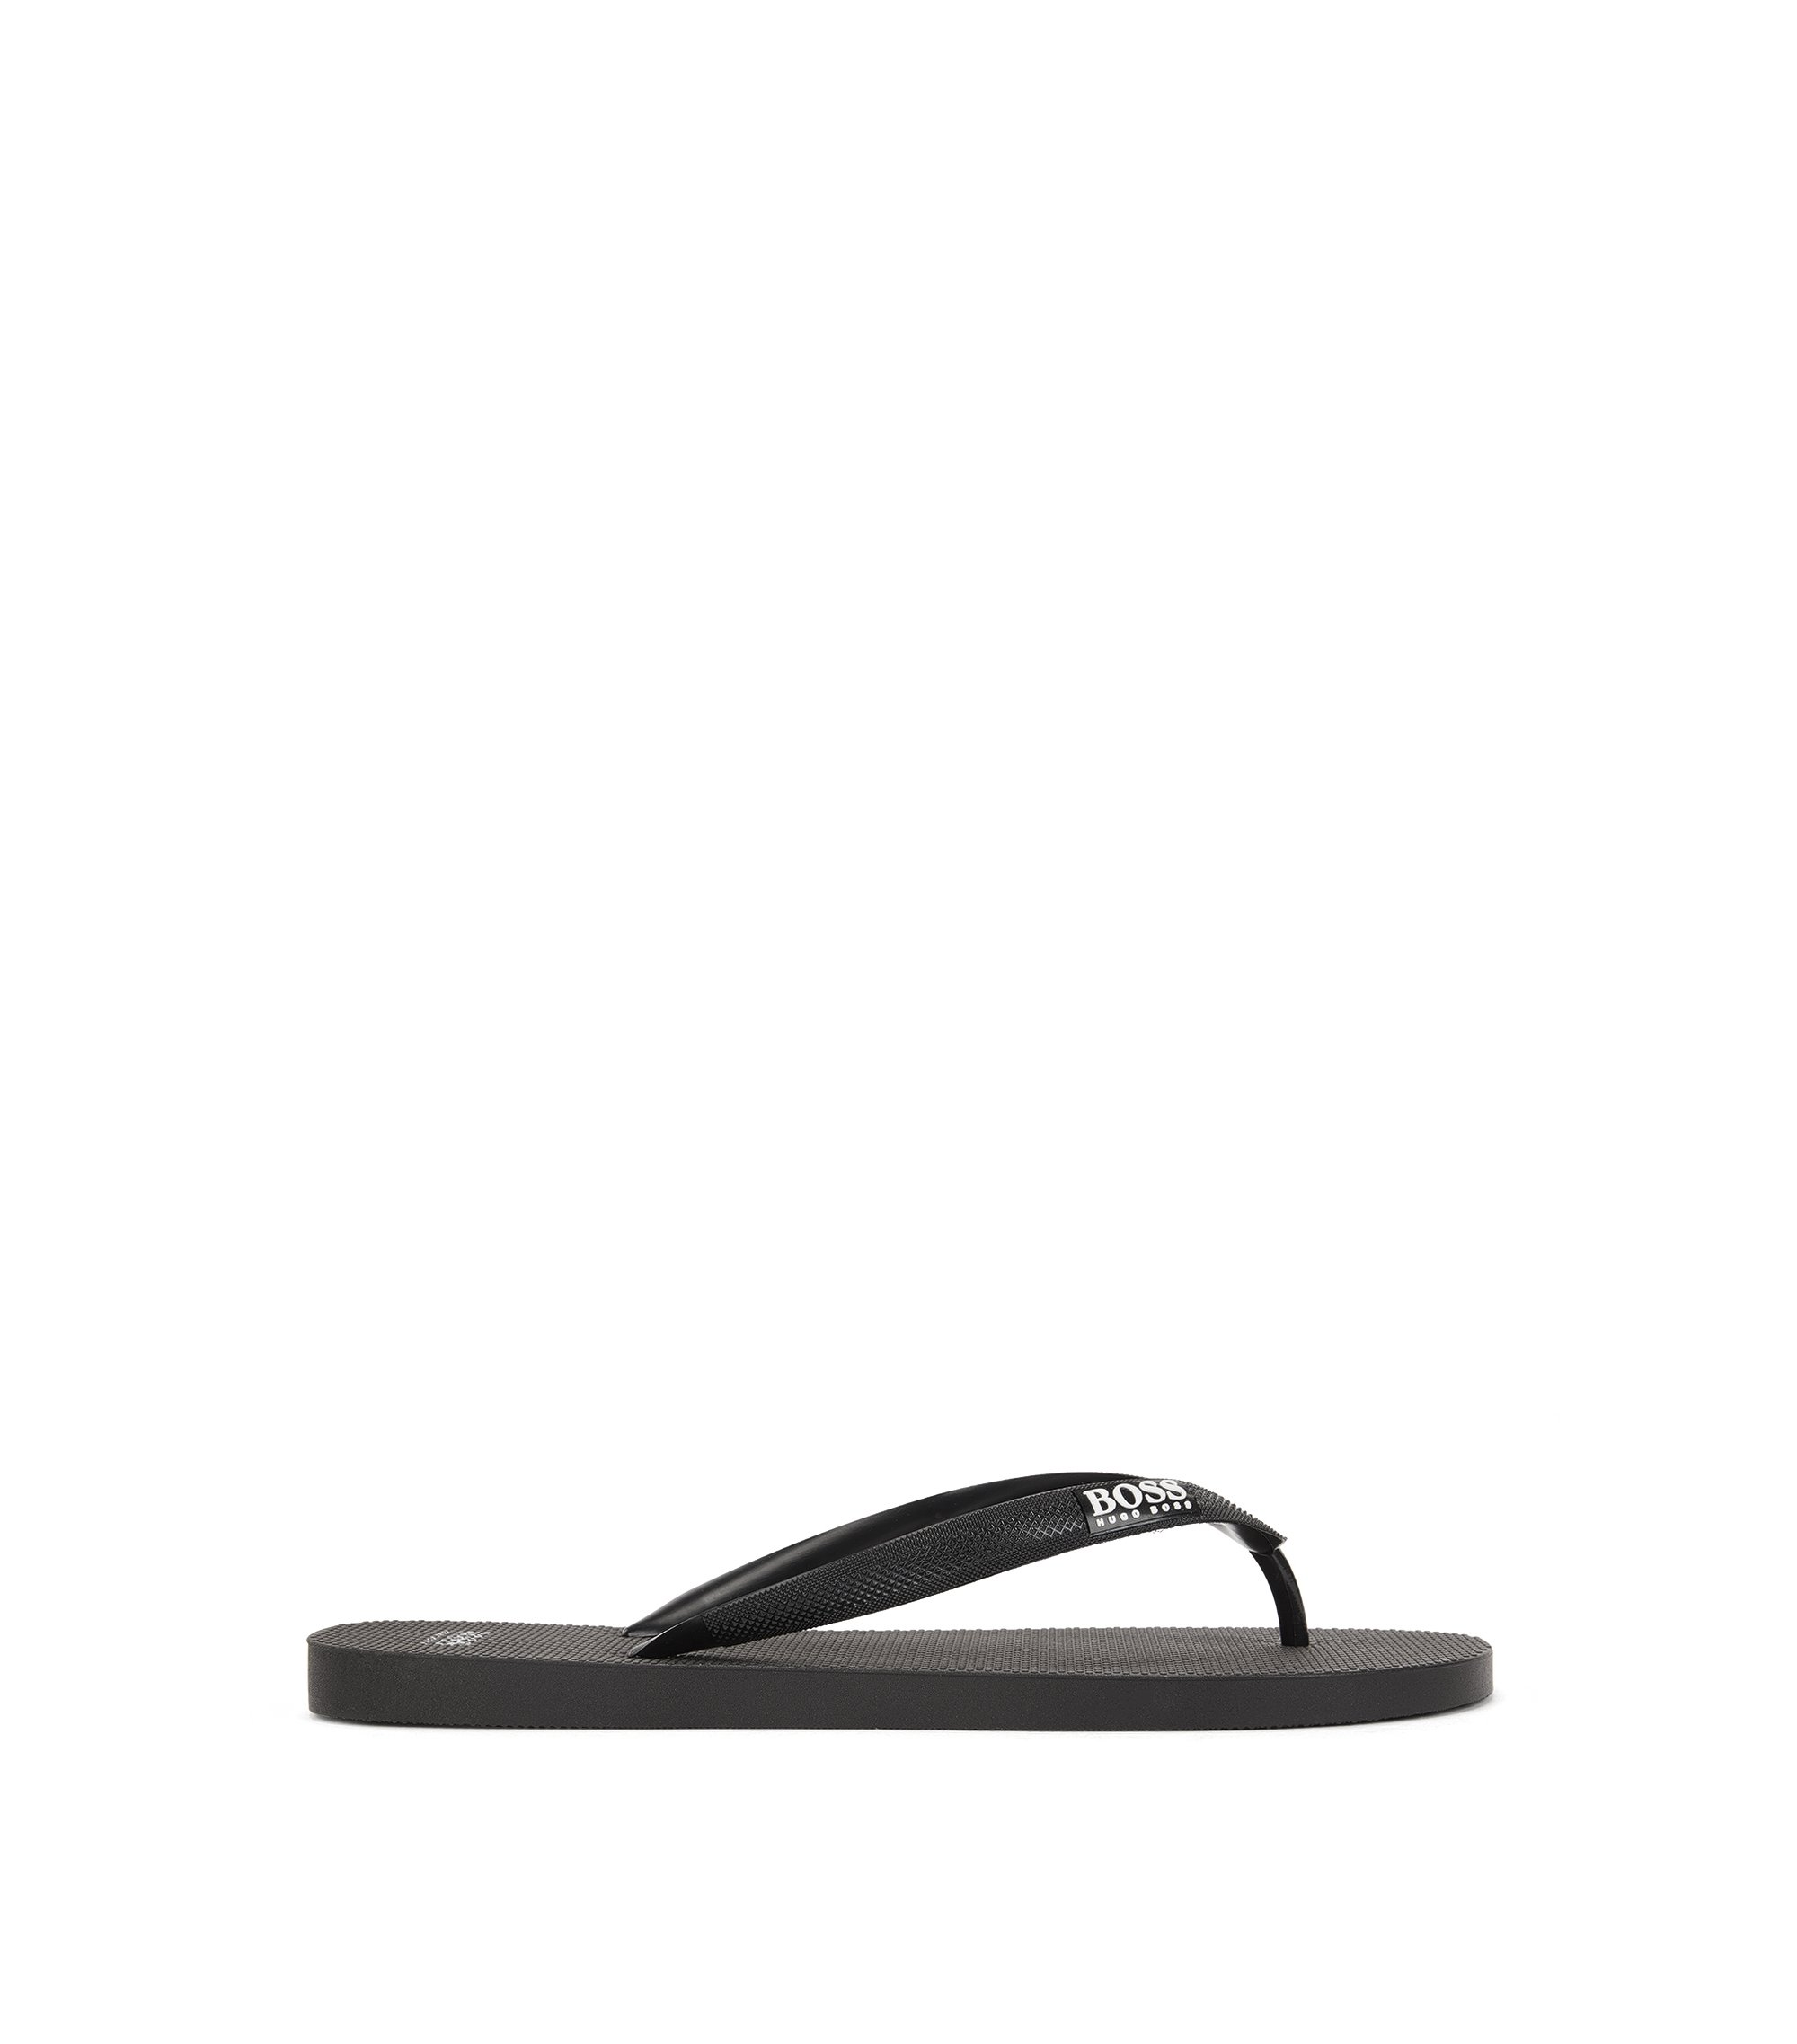 Toe-post flip-flops in textured rubber, Black